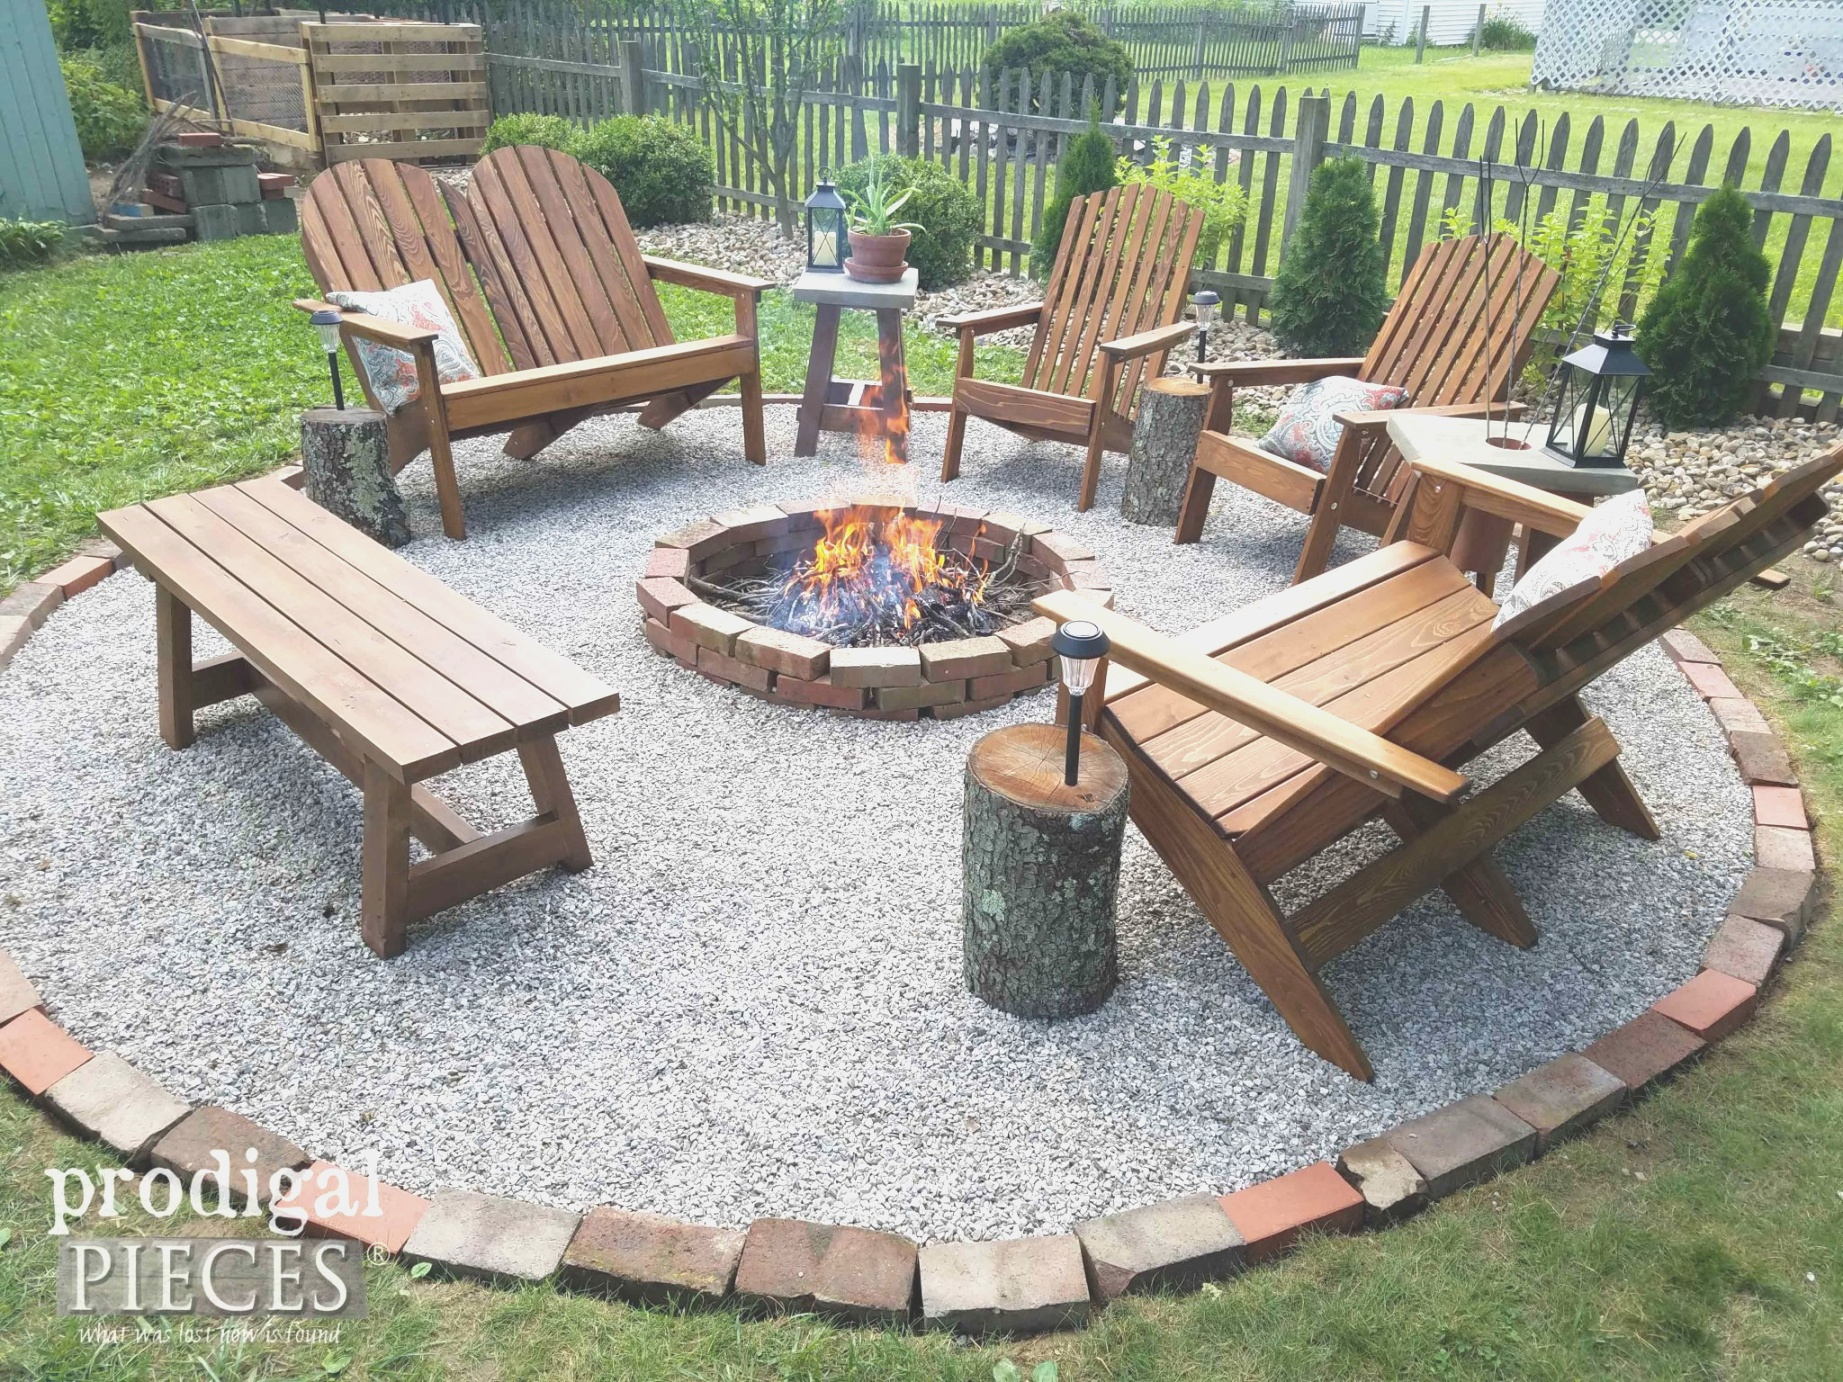 diy fire pit | DIY Fire Pit ~ Backyard Budget Decor - Prodigal Pieces | diy fire pit